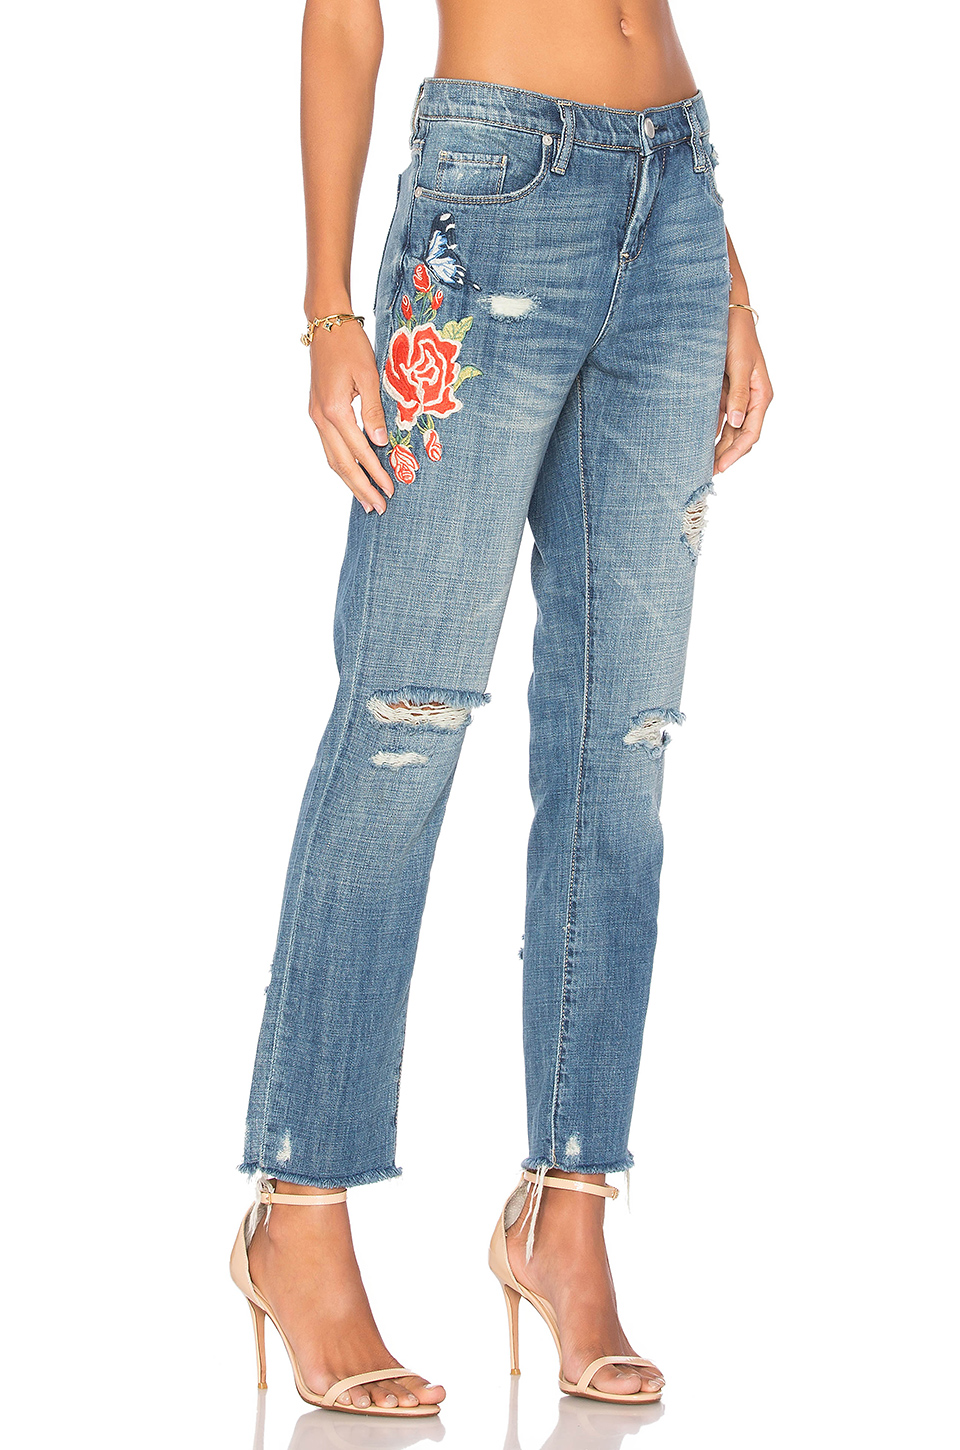 embroidered denim trends